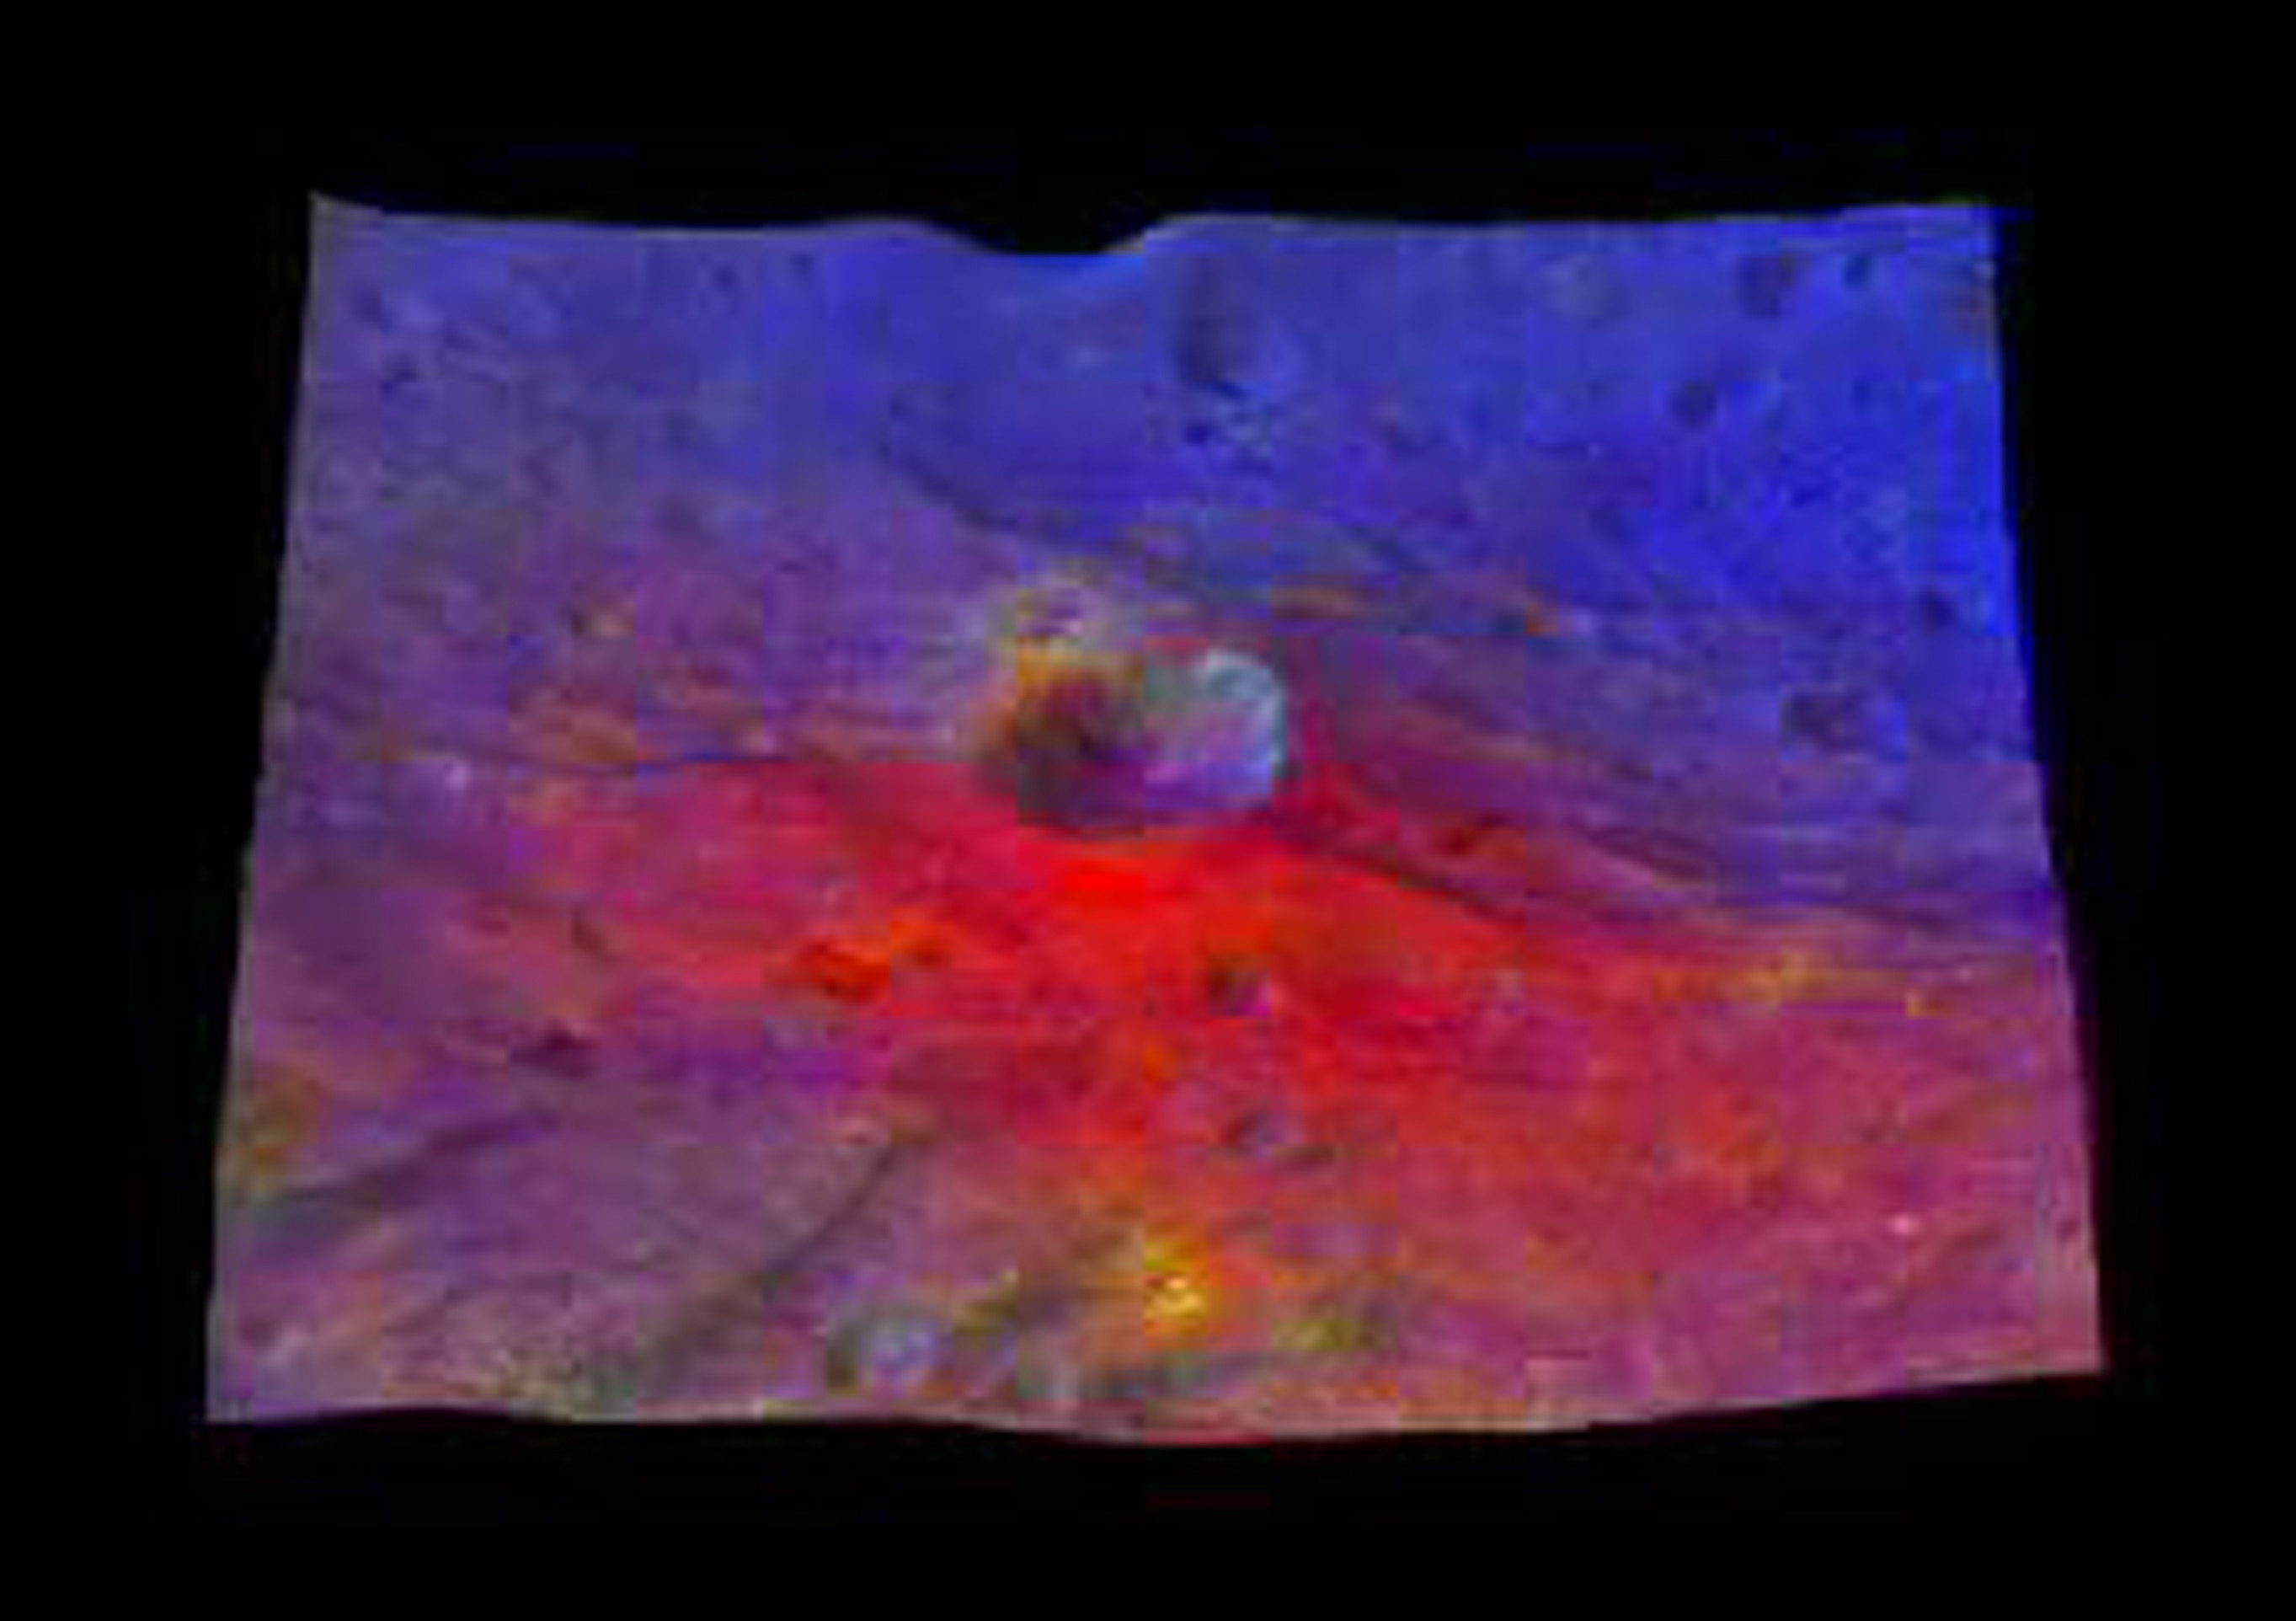 This image from NASA's Dawn mission shows a 3-D, colorized rendering of Oppia Crater near the equator of the giant asteroid Vesta. Oppia is about 21 miles (34 kilometers) across.